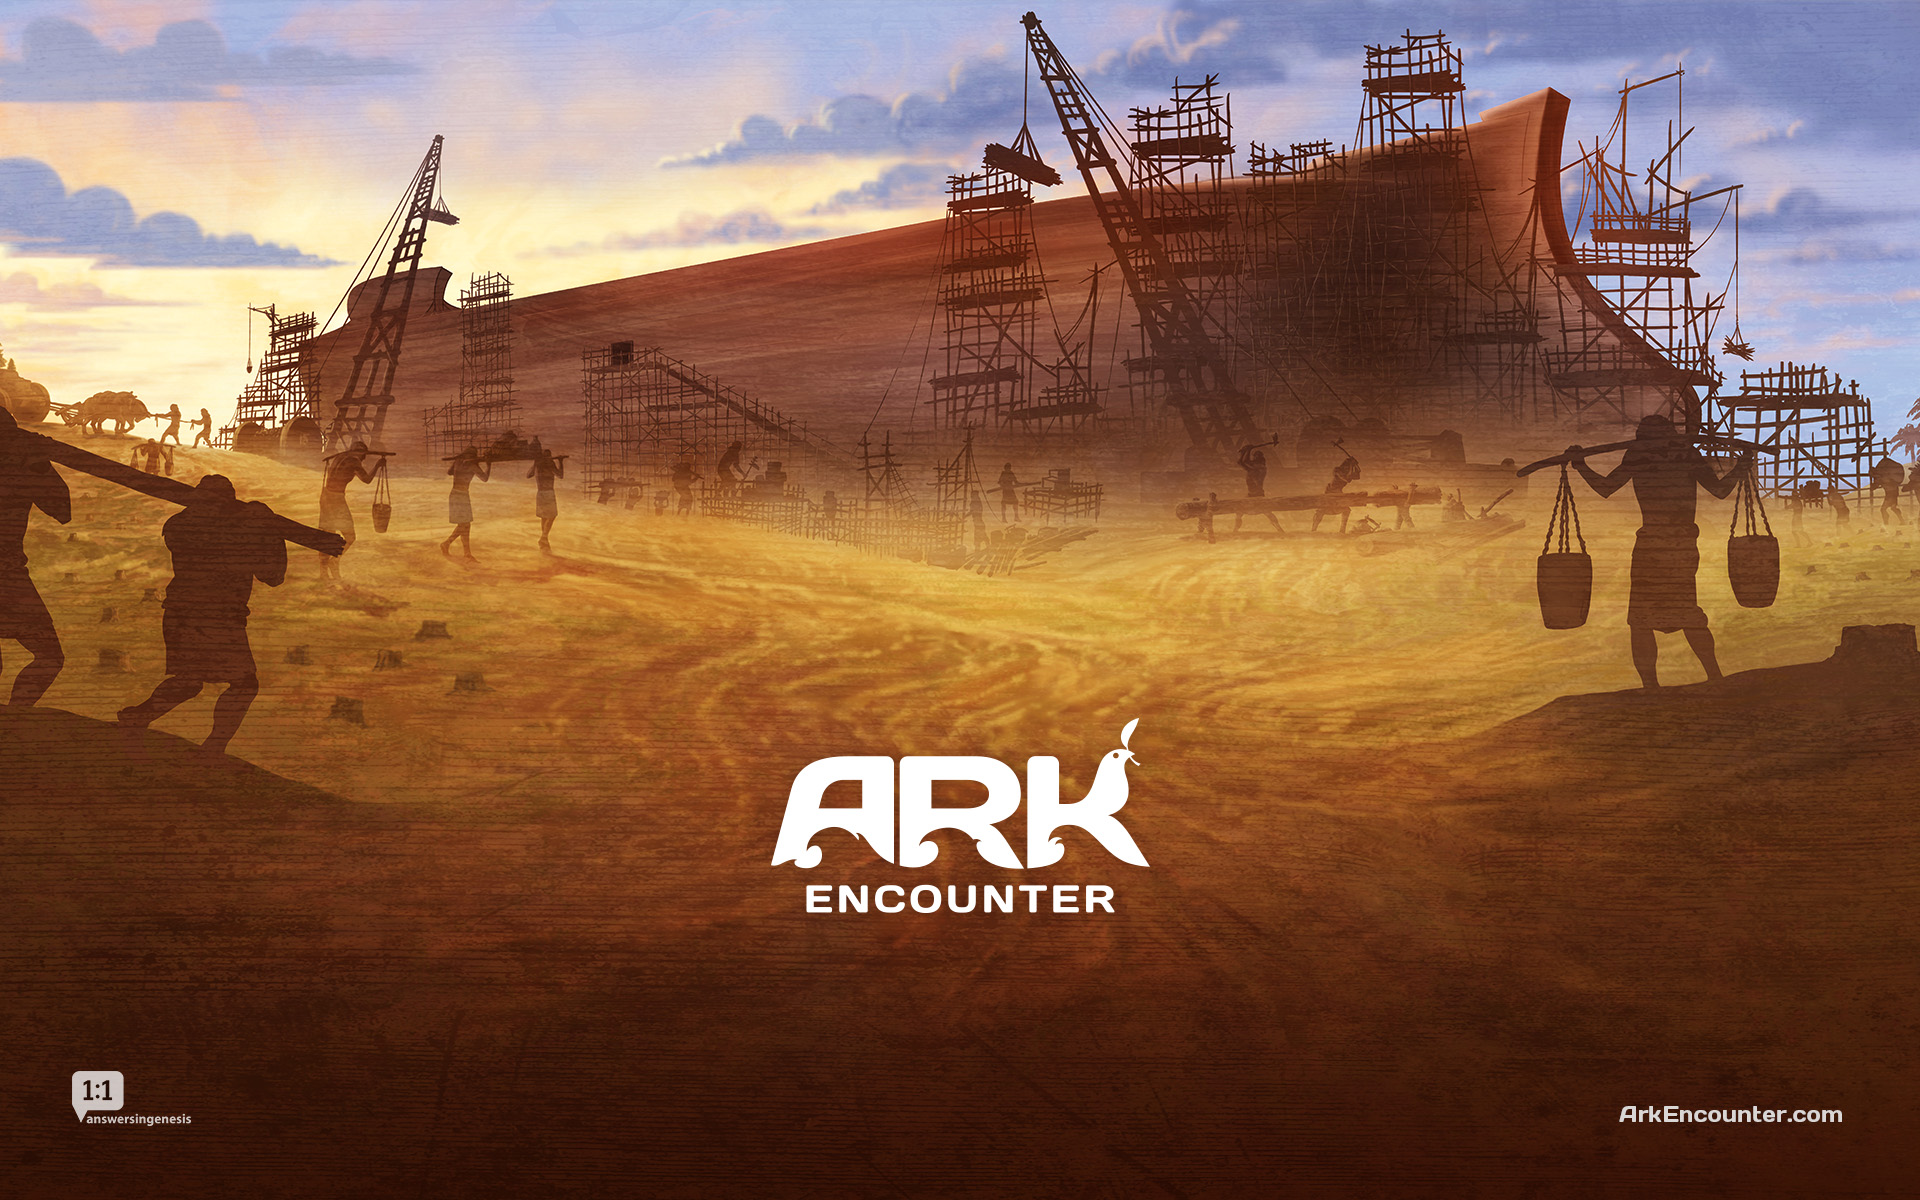 Forthcoming faith-based attraction, the Ark Encounter